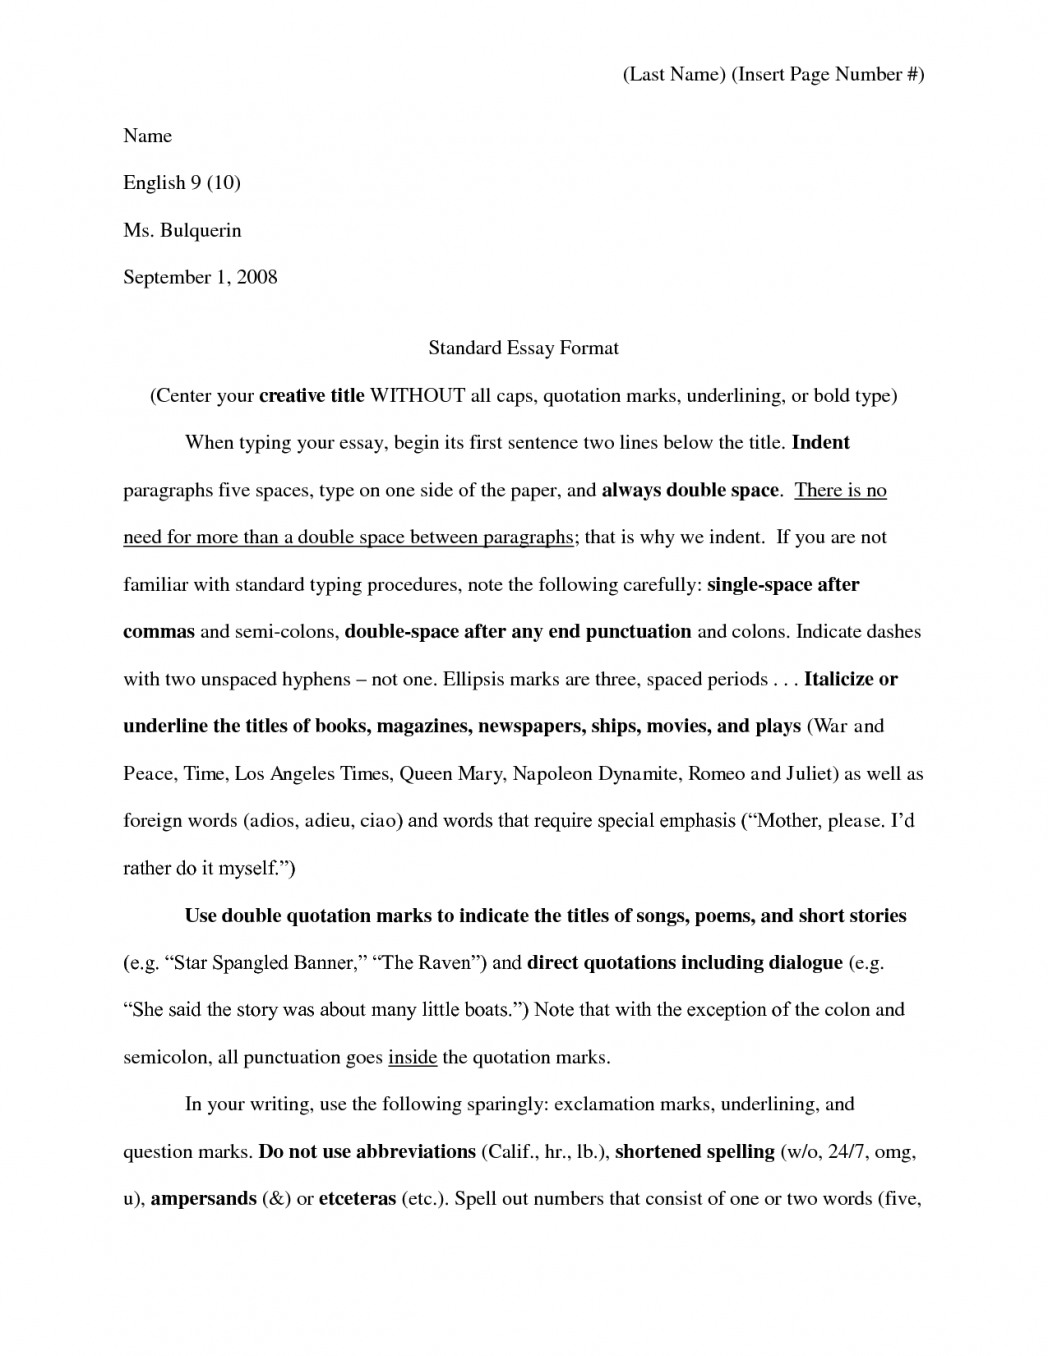 005 Proper Heading For College Essay Application Writ Admission Format 1048x1356 Example Rare Header Apa Full